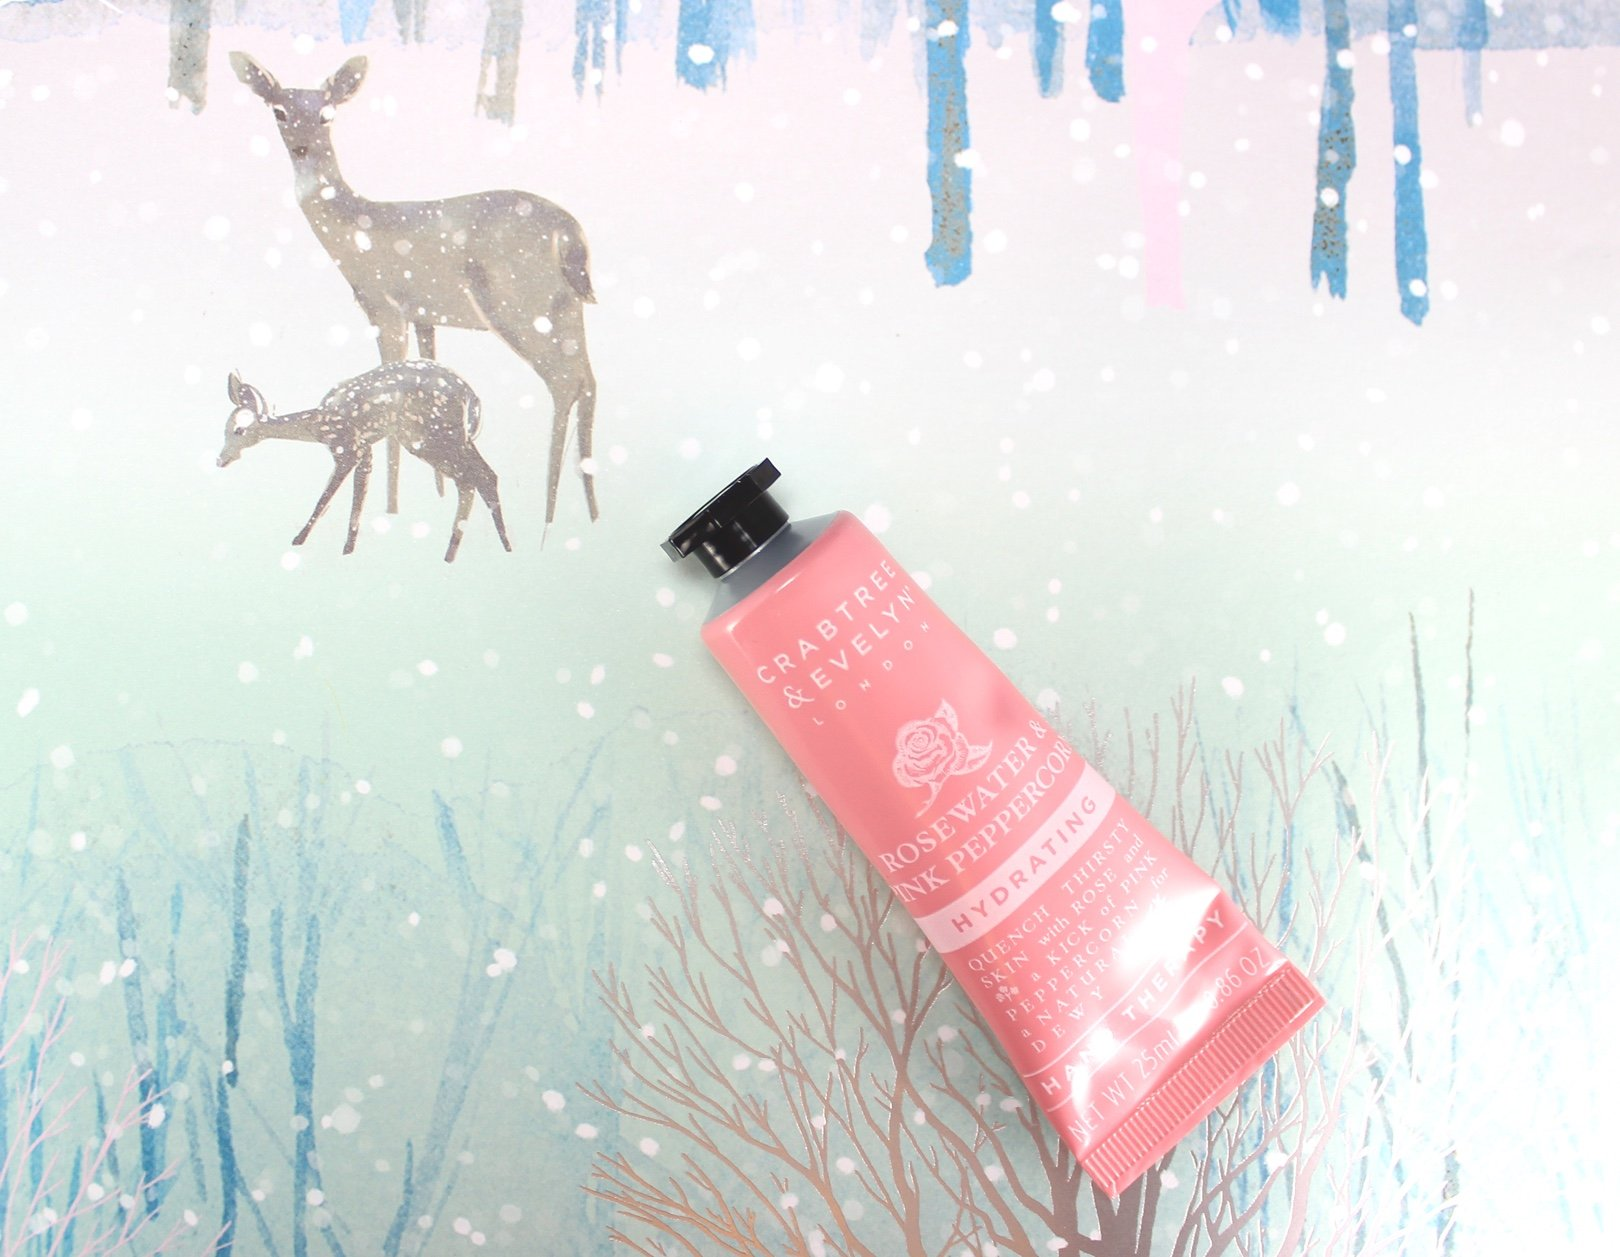 12 days of crabtree & evelyn advent calendar rosewater